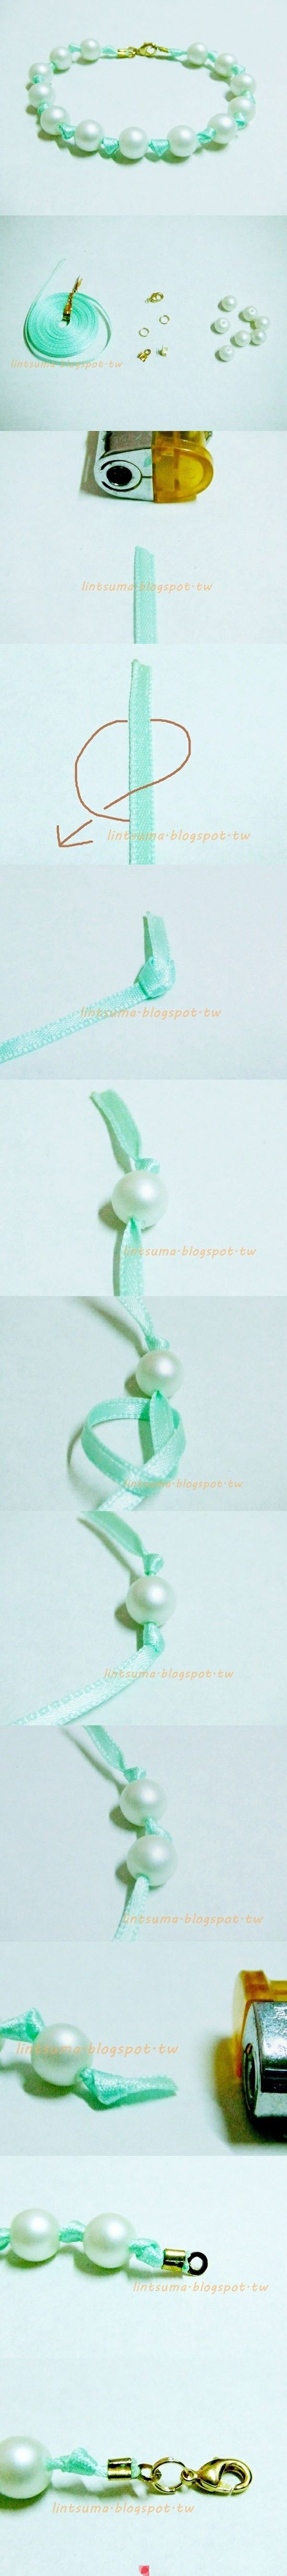 Use as a package ribbon?  DIY jewelry | Beautiful handmade bracelets and necklaces using ribbons and beads.